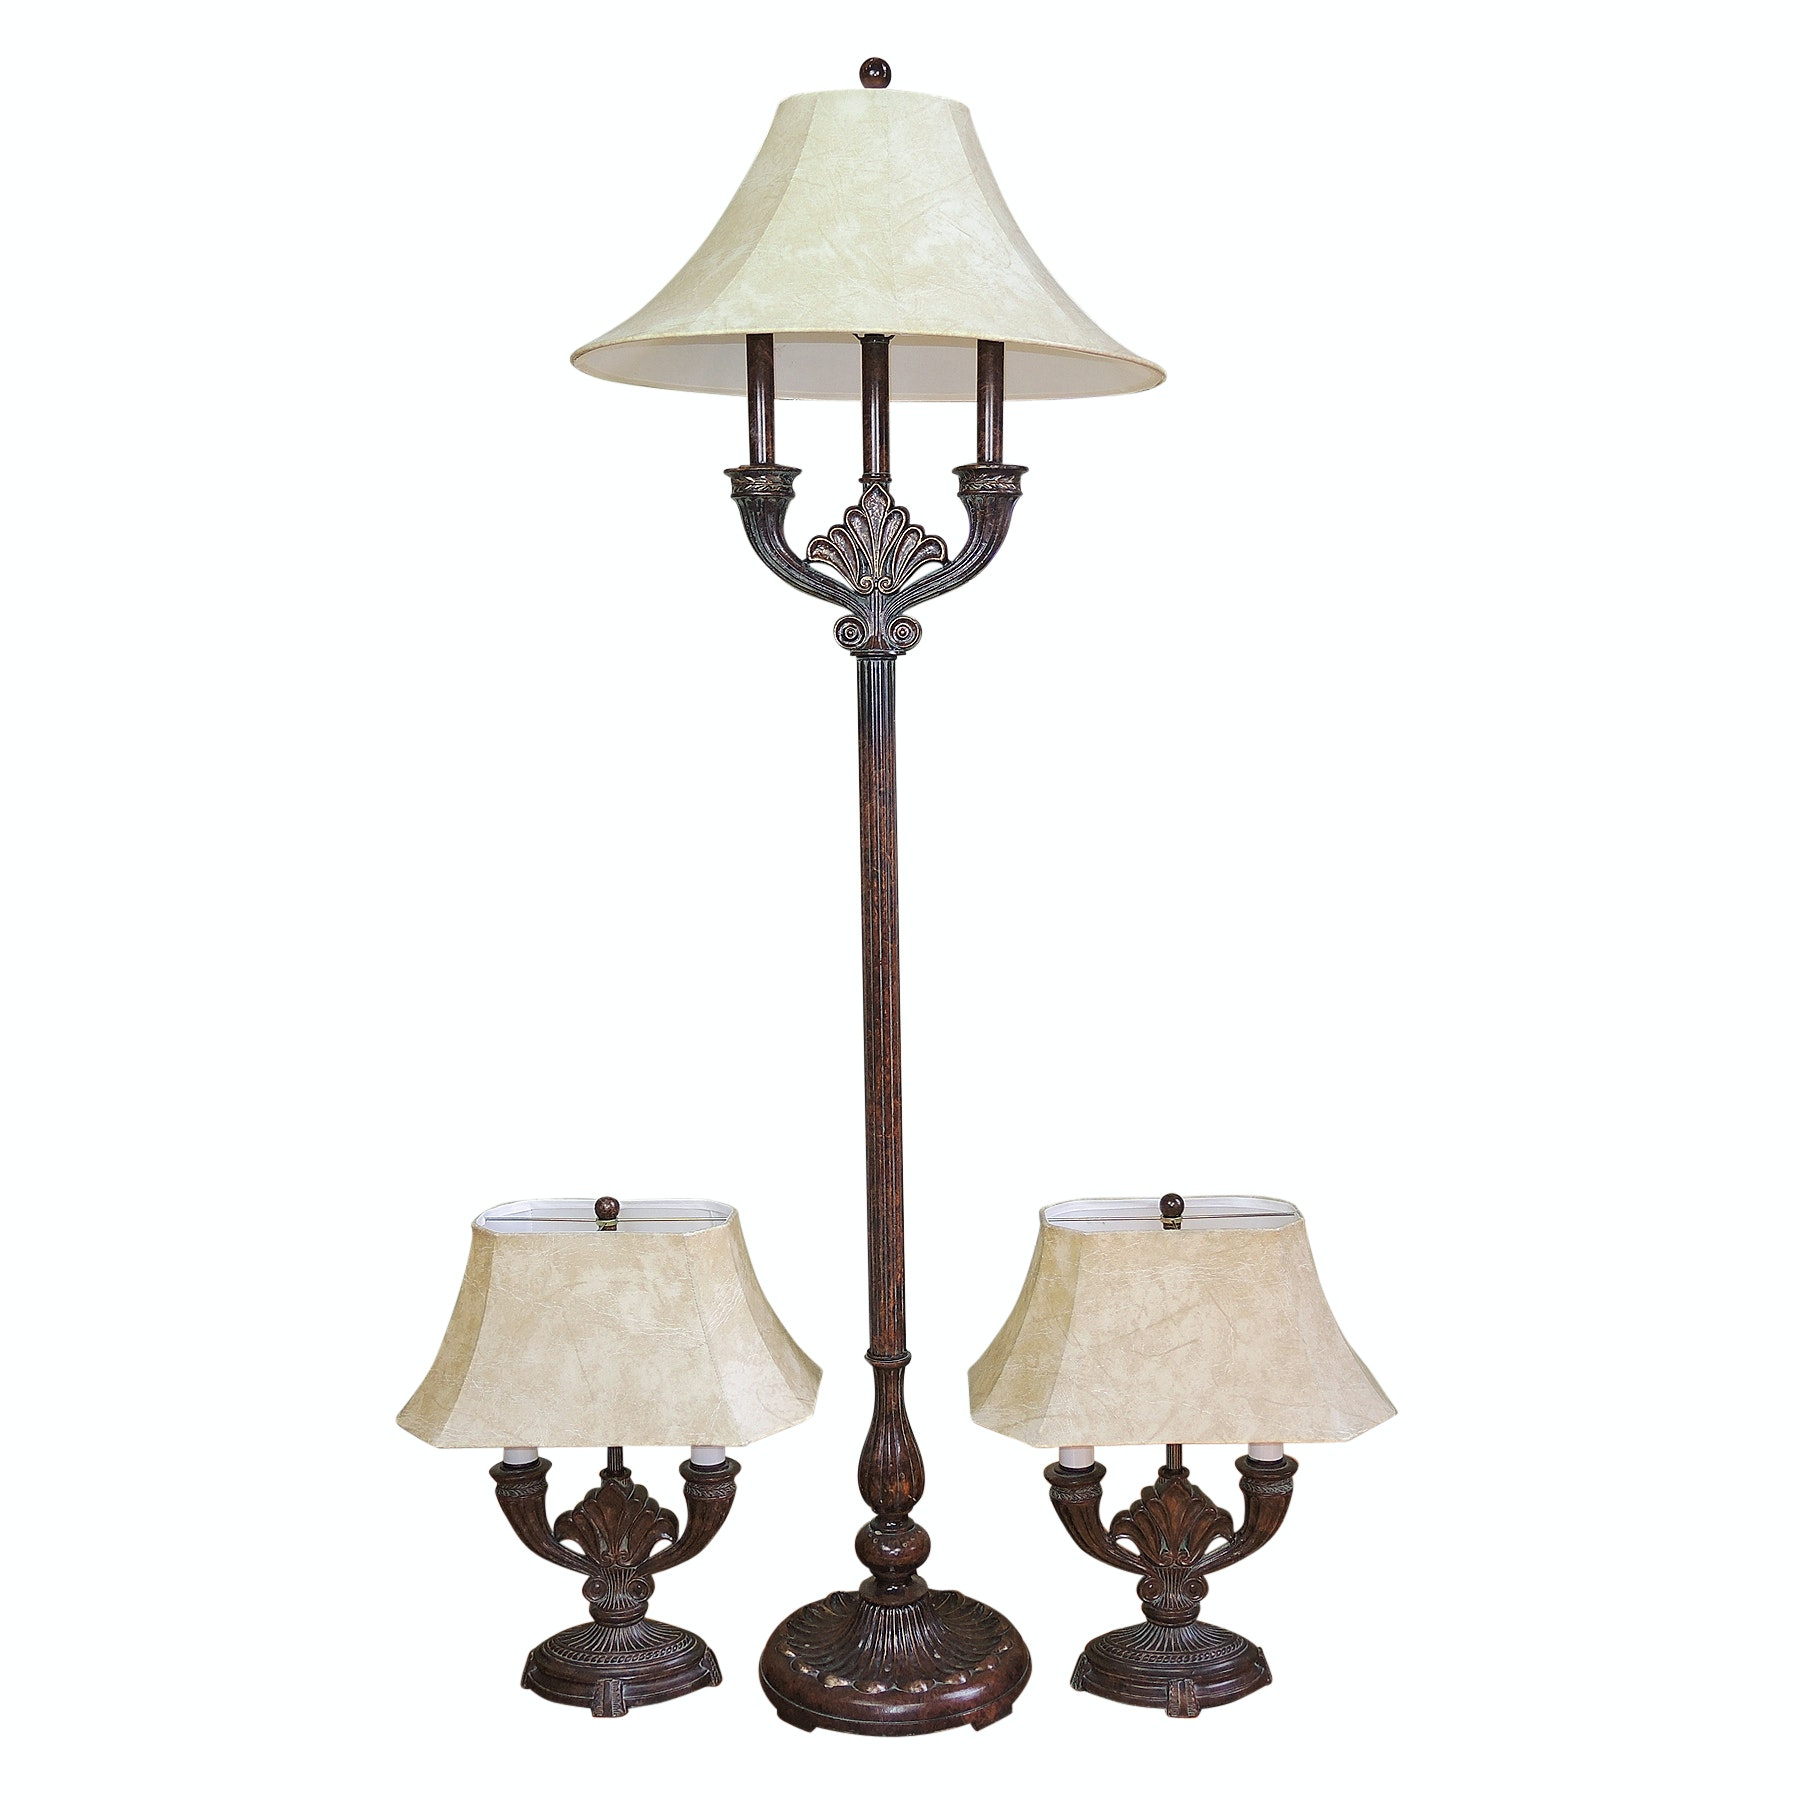 Neoclassical Style Metal Floor Lamp with Matching Pair of Table Lamps